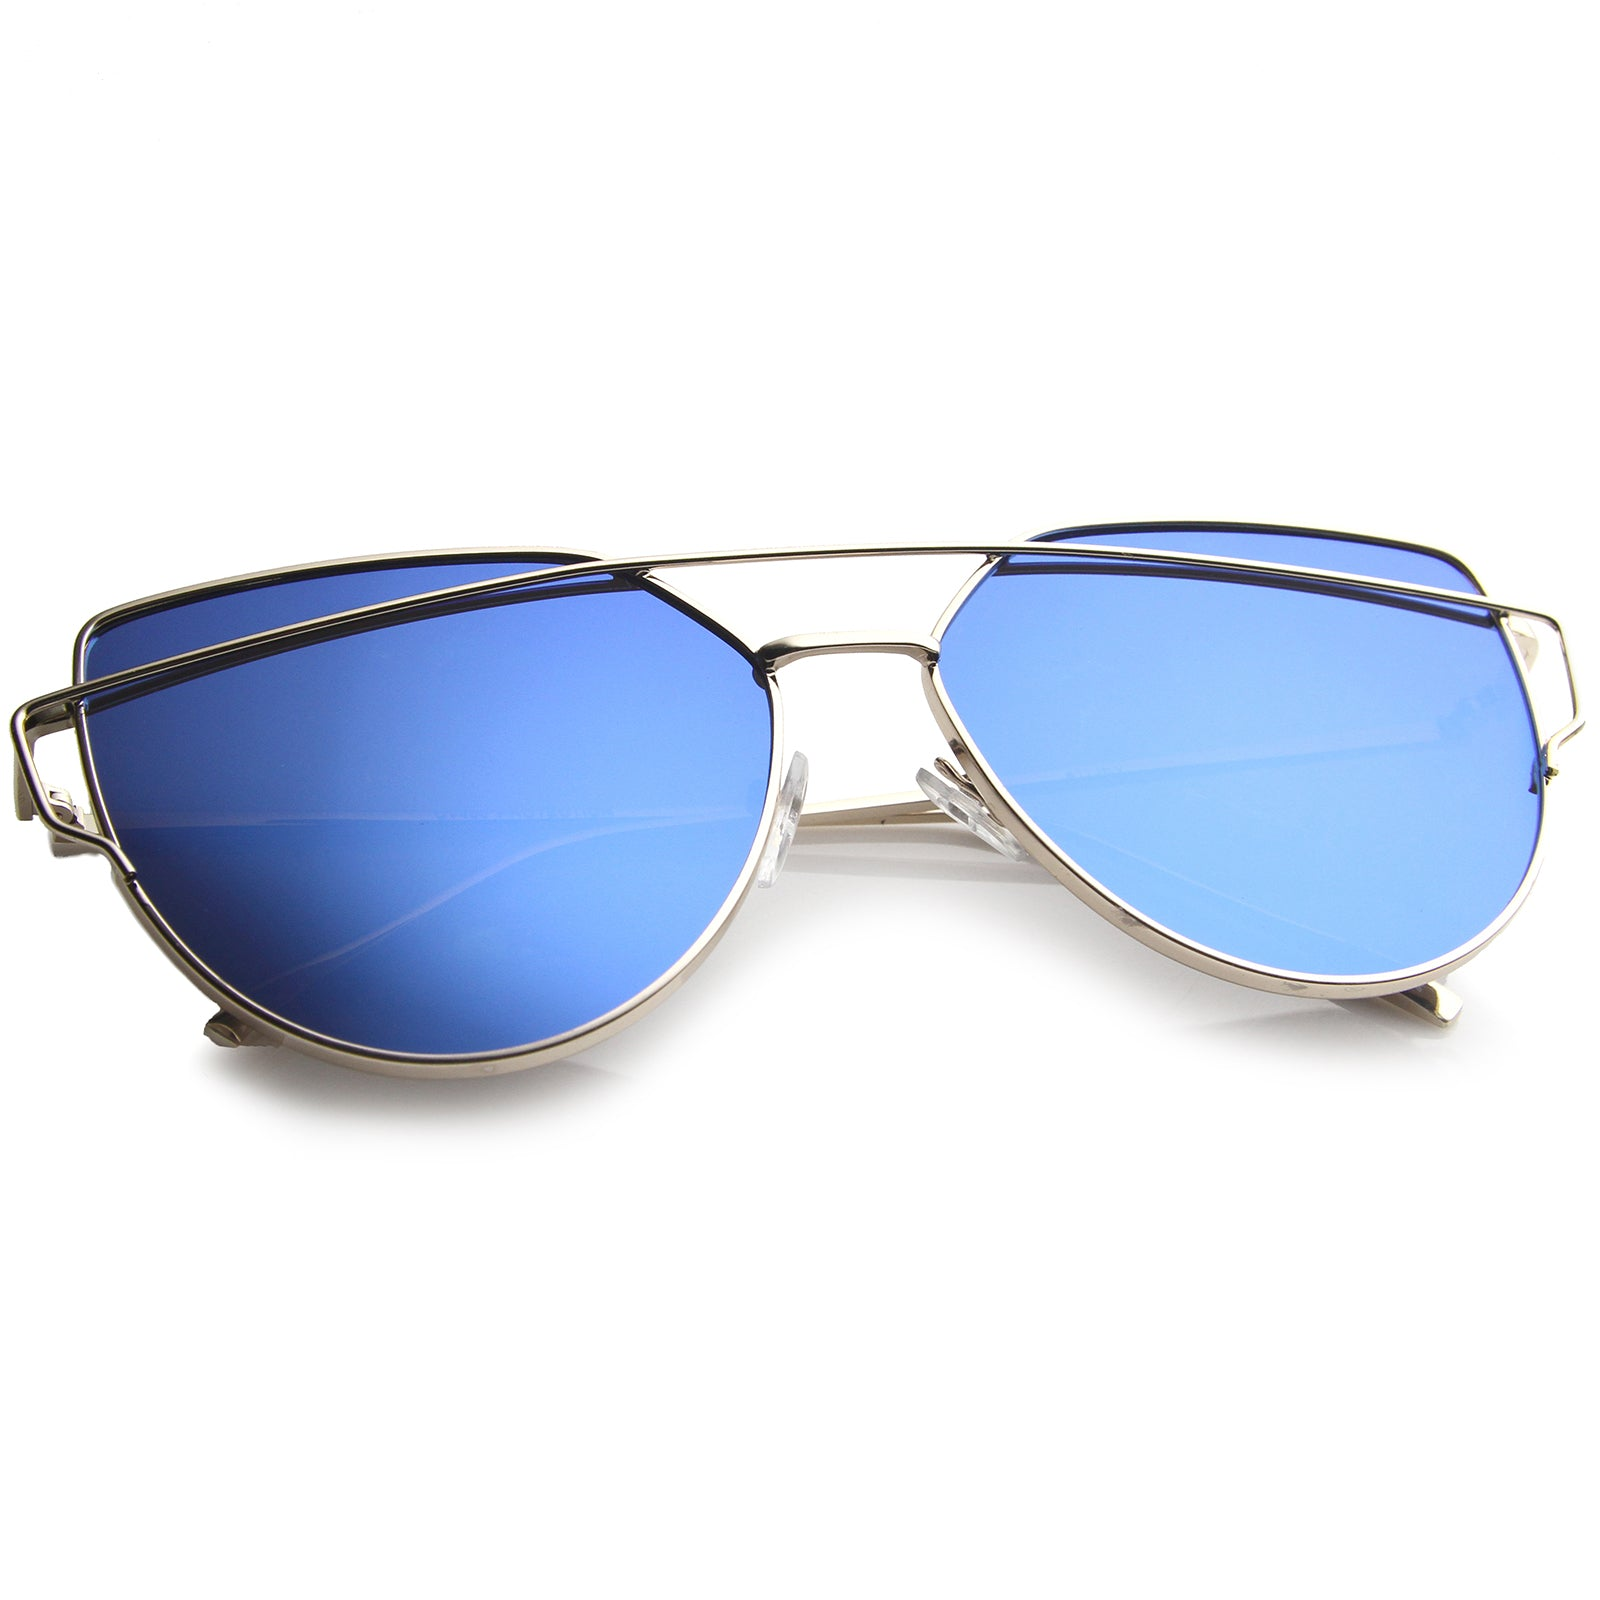 Oversize Metal Frame Thin Temple Color Mirror Flat Lens Aviator Sunglasses 62mm - sunglass.la - 12